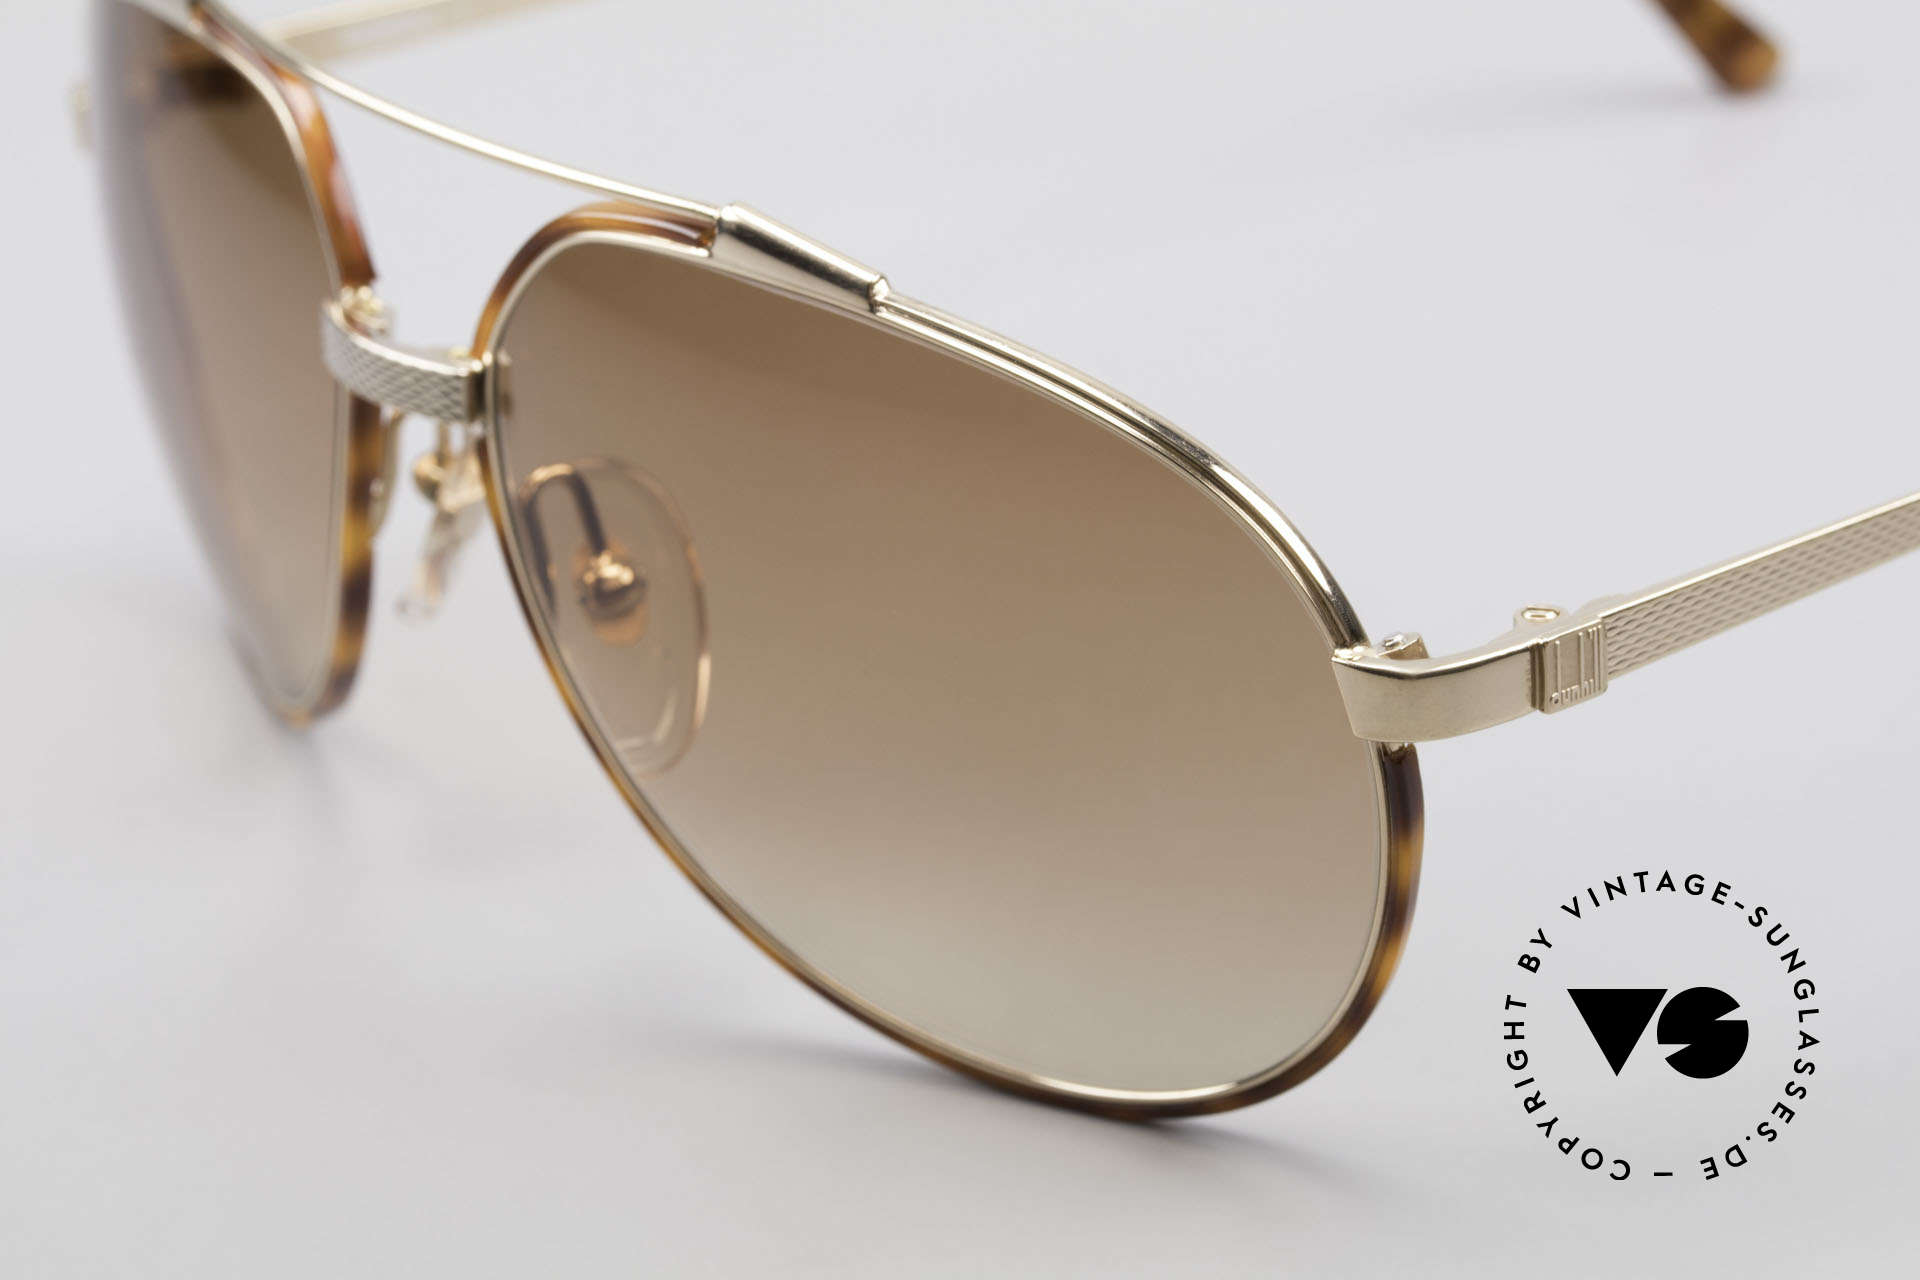 Dunhill 6174 Comfort Fit Luxury Sunglasses, an elegant classic with light tortoise windsor rings, Made for Men